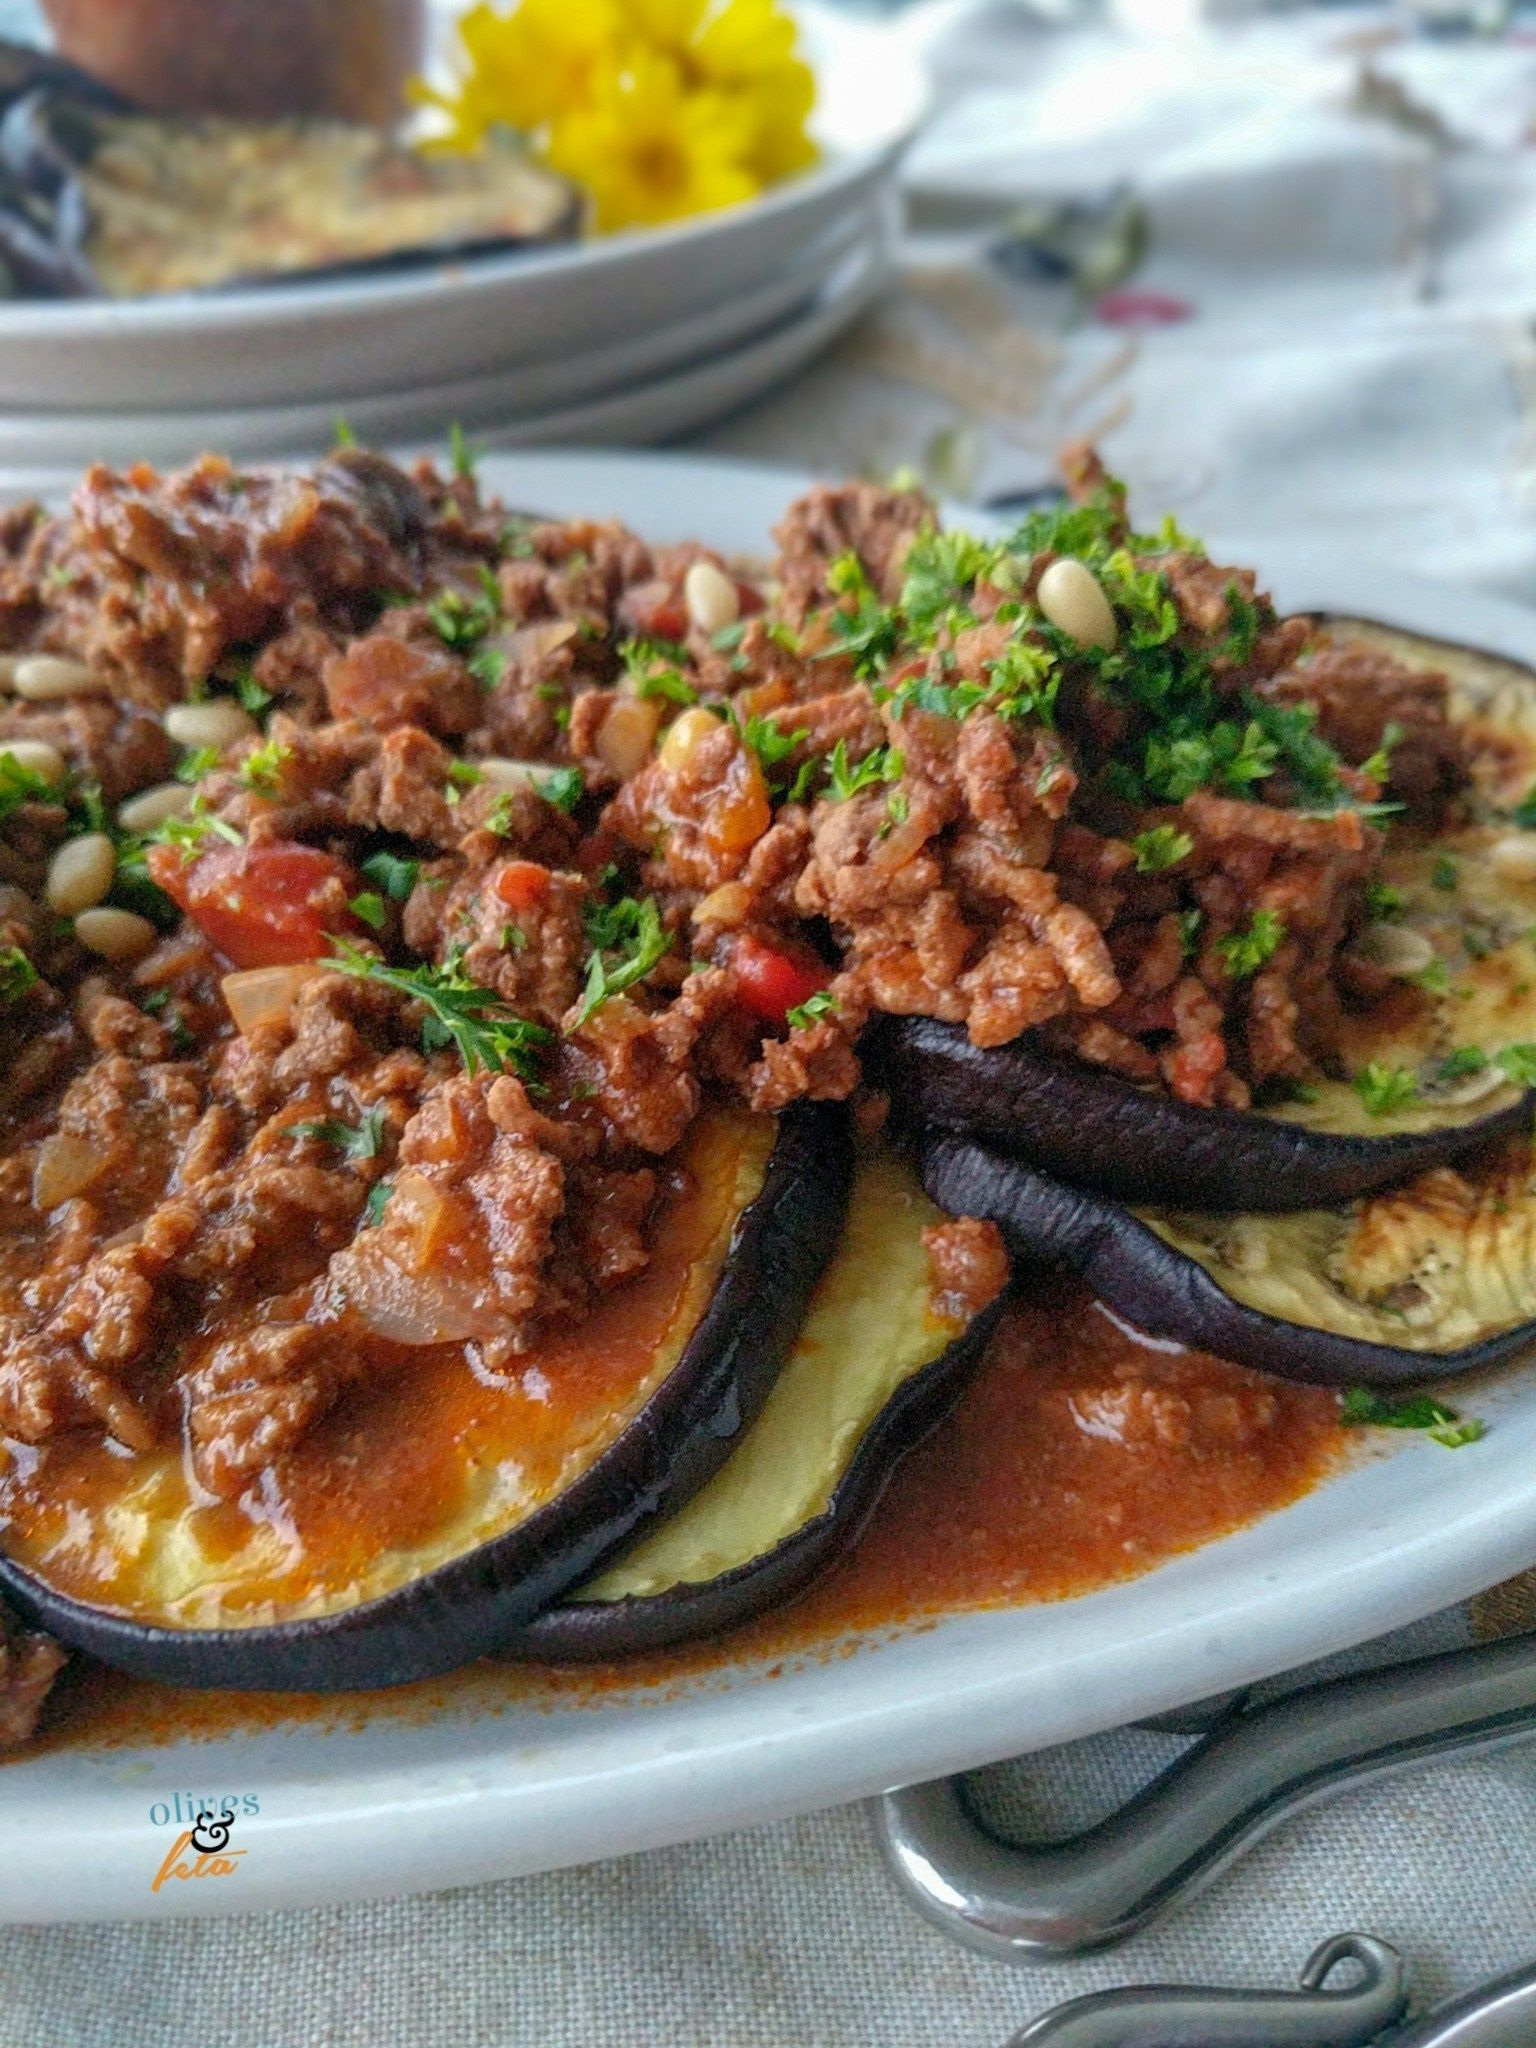 Healthy Grilled Eggplant Layered And Stacked With Herbed Ground Beef A Quick Mid Week Meal Olivesandfeta Healthy Grilling Meals Grilled Eggplant